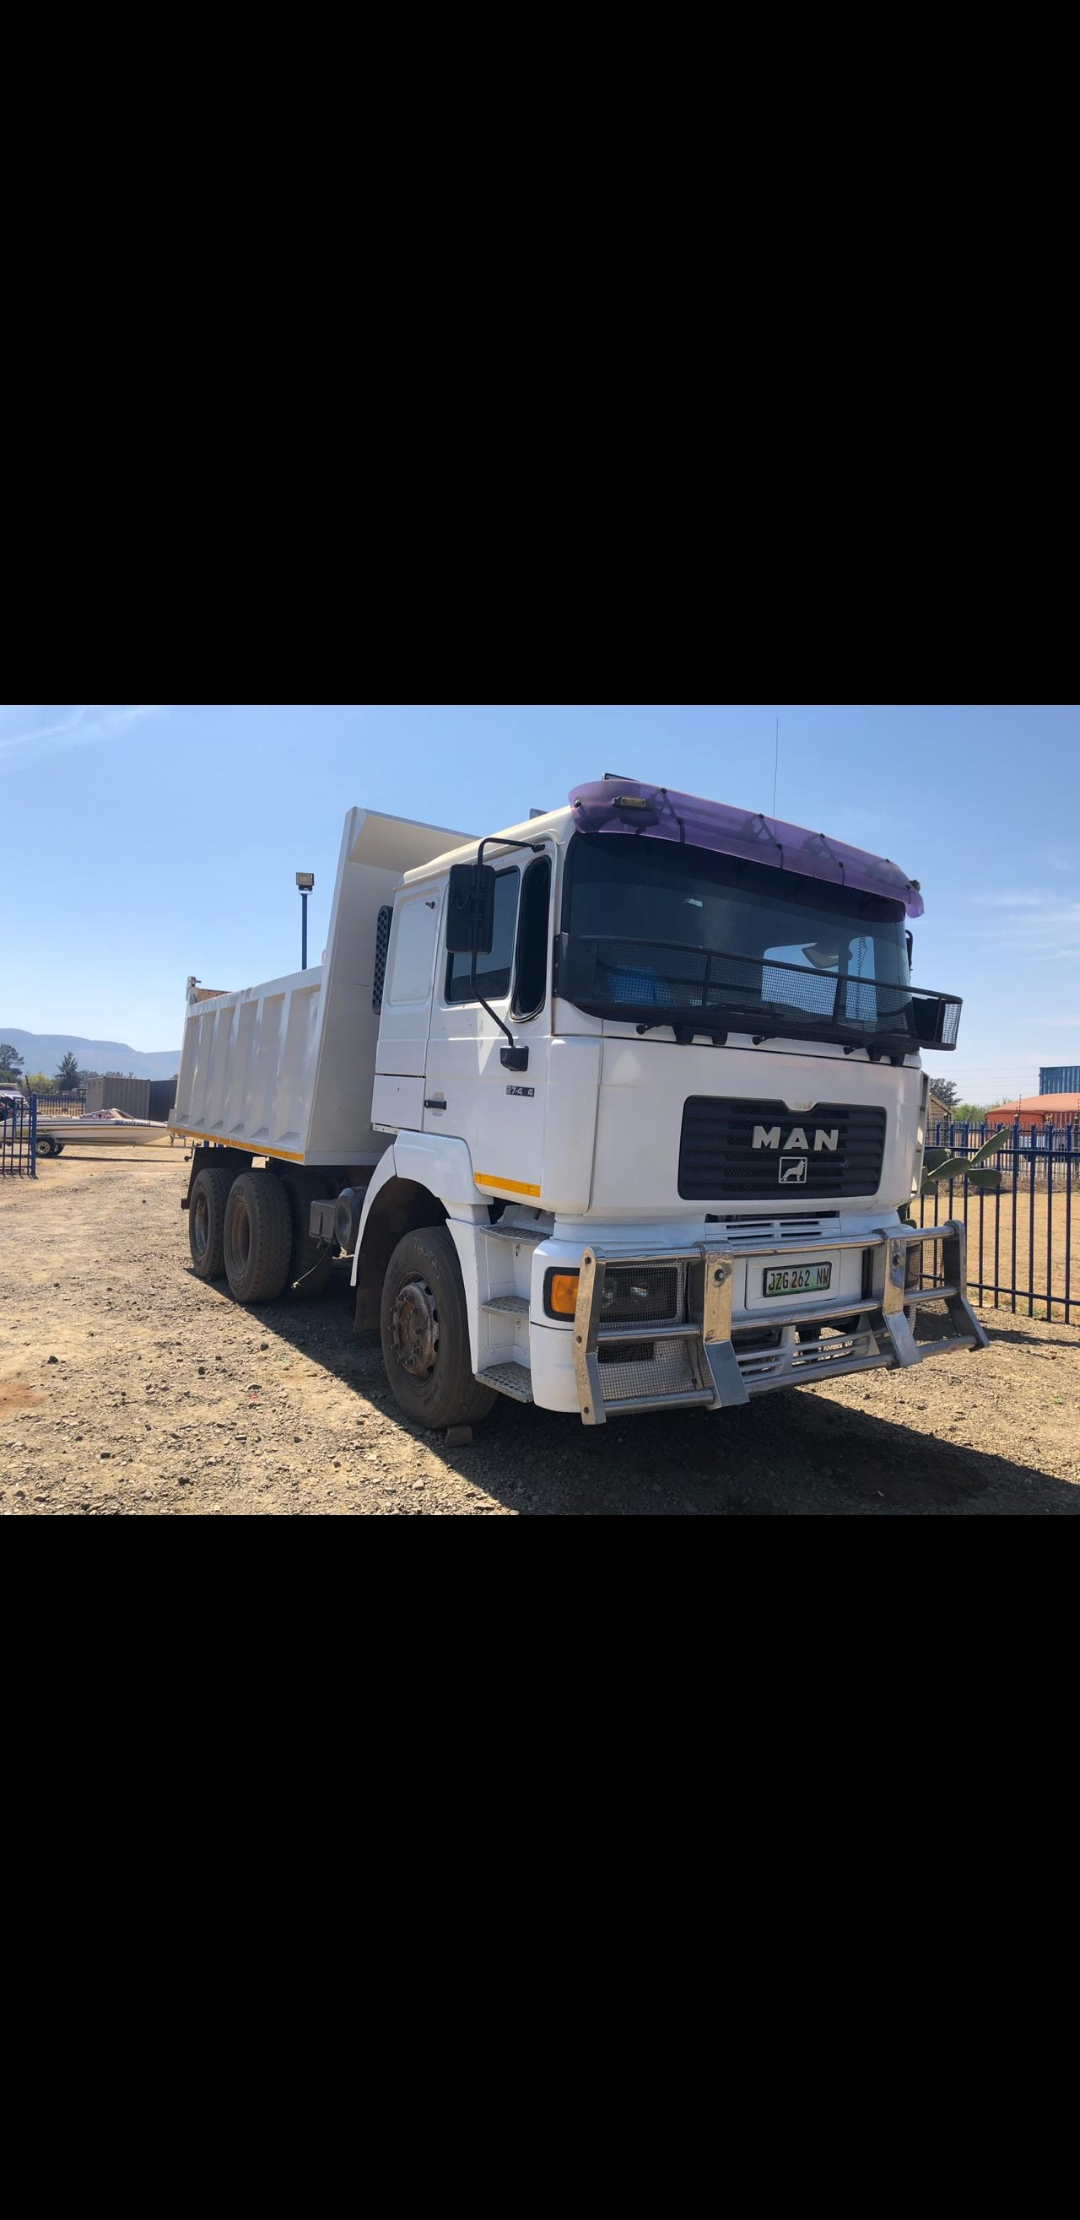 Man Tipper Truck For Sale